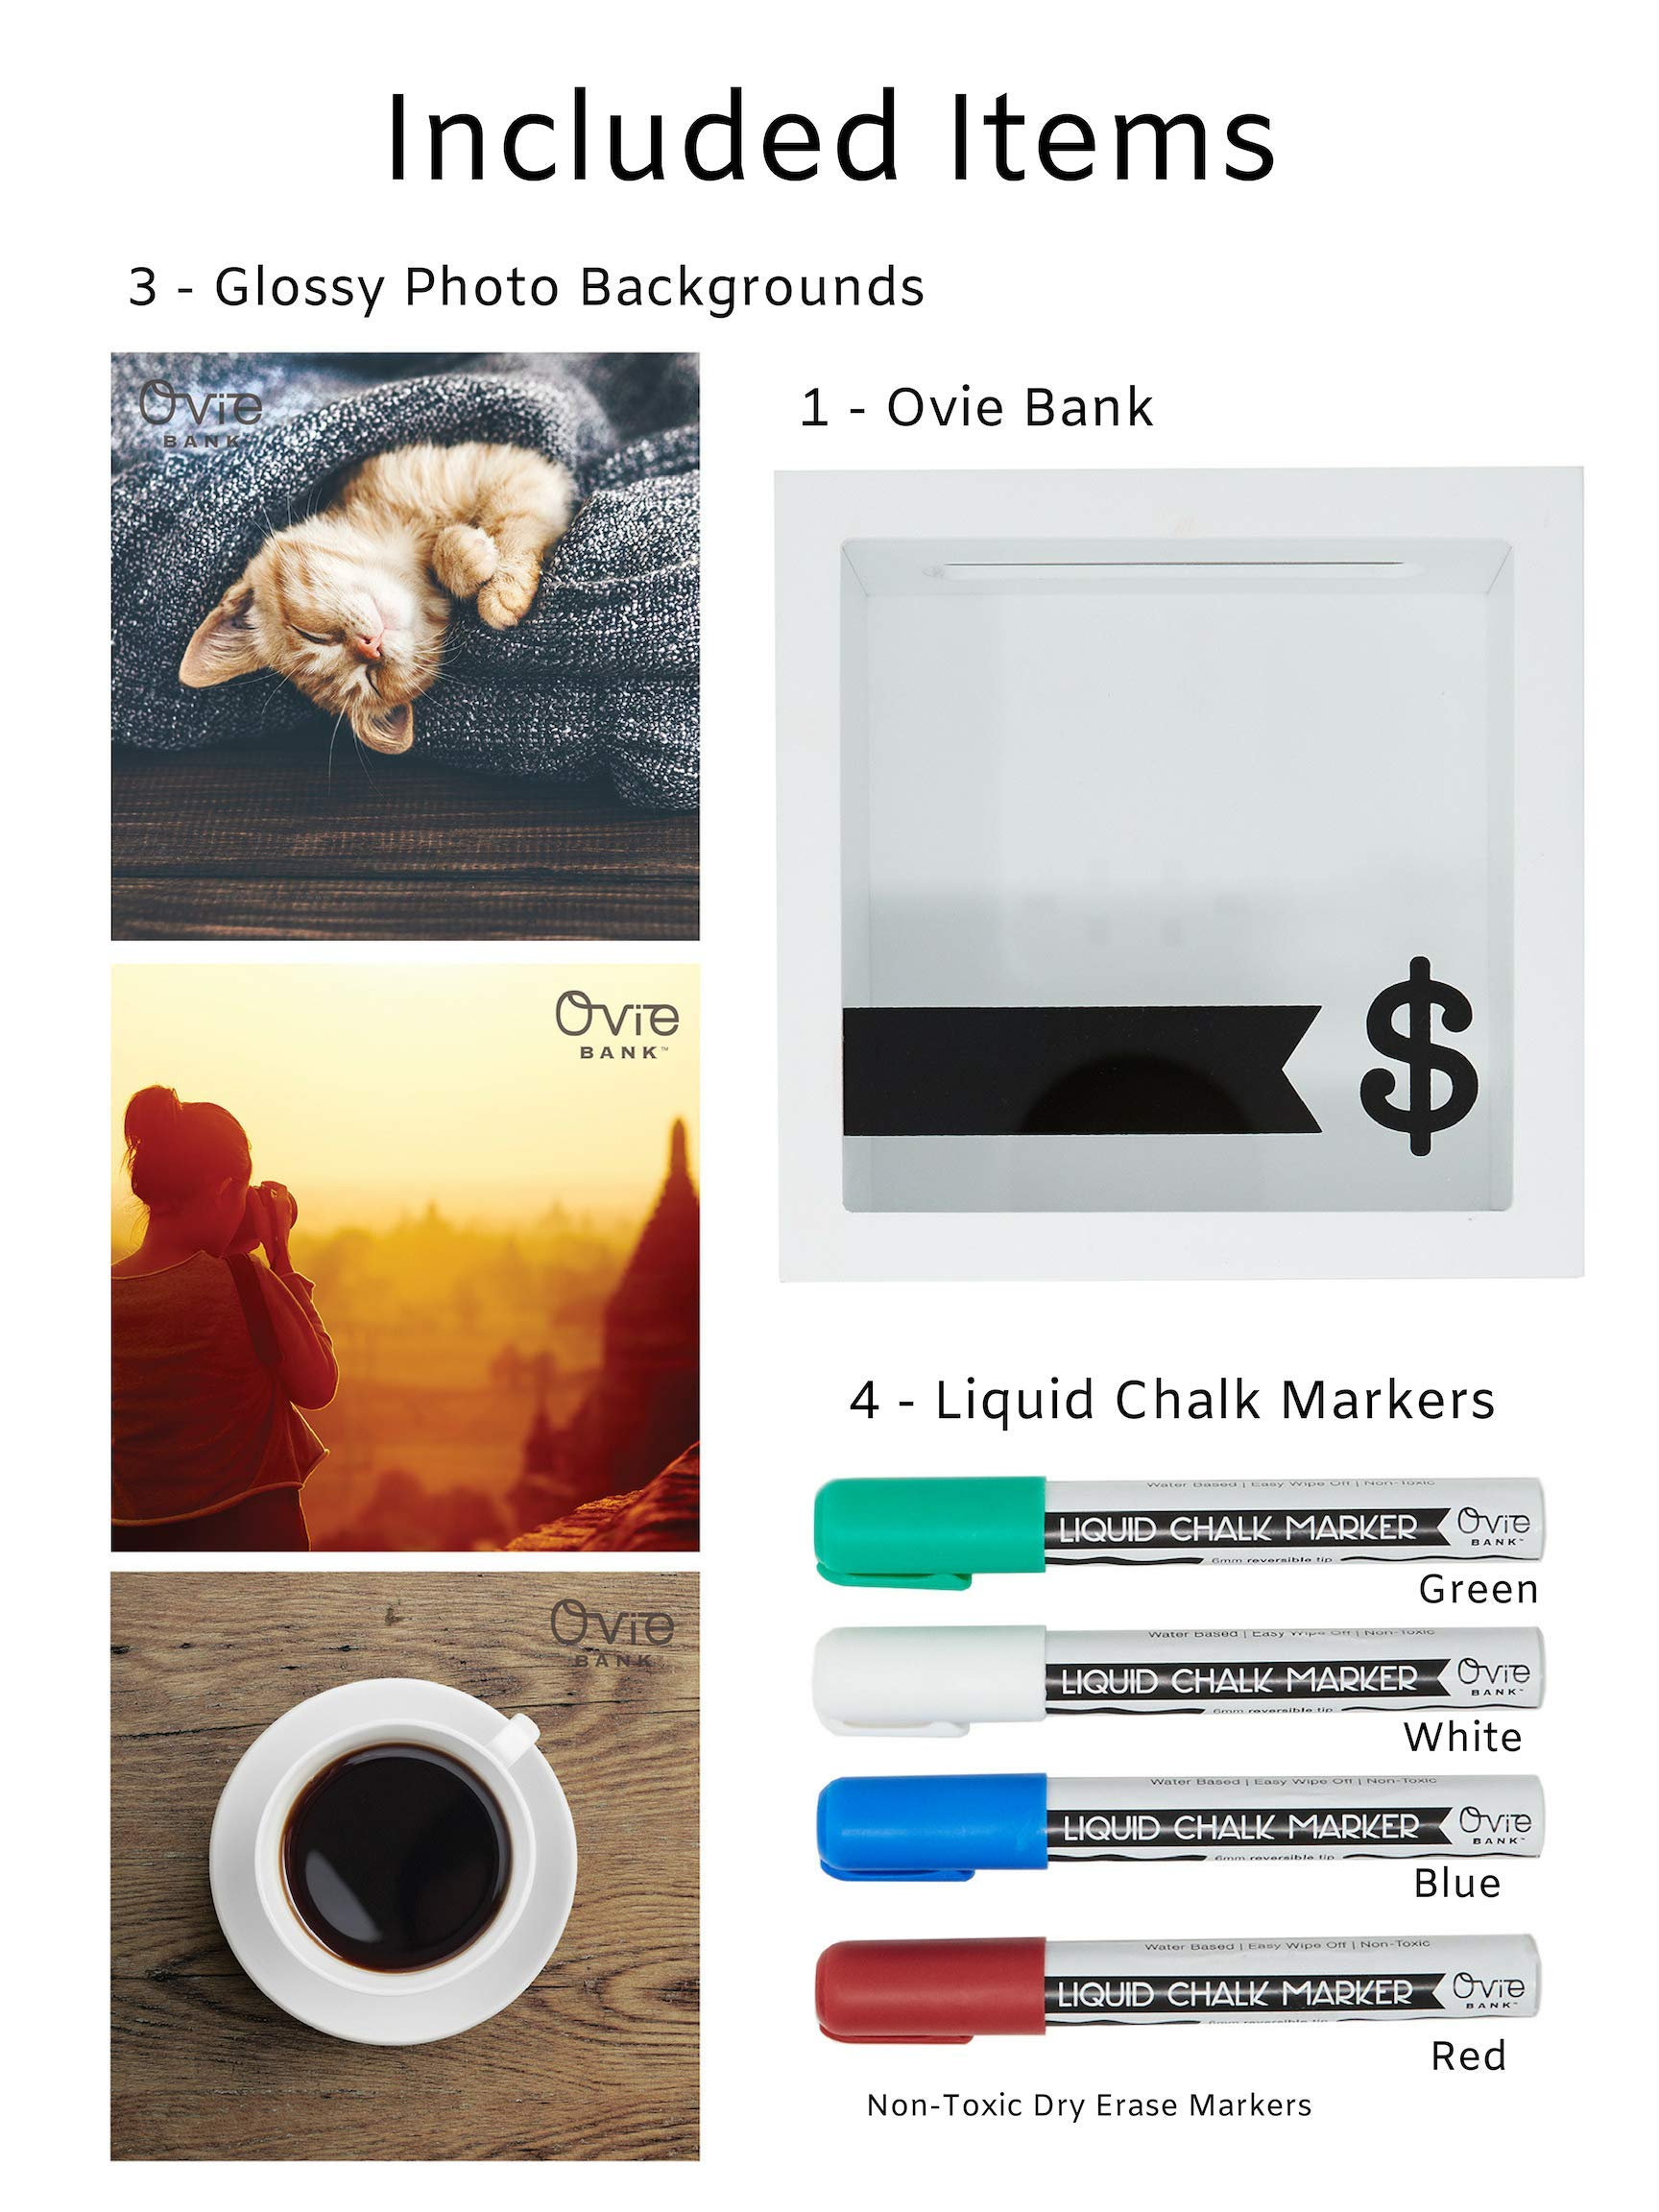 OVIE Adult Piggy Bank $ - Shadow Box with Wood Frame - Keep in Kitchen to Track Vacation/Honeymoon/Wedding/Adventure Funds - 6X6 Frames - Clear Glass/Picture Background/Colored Markers by OVIE (Image #3)